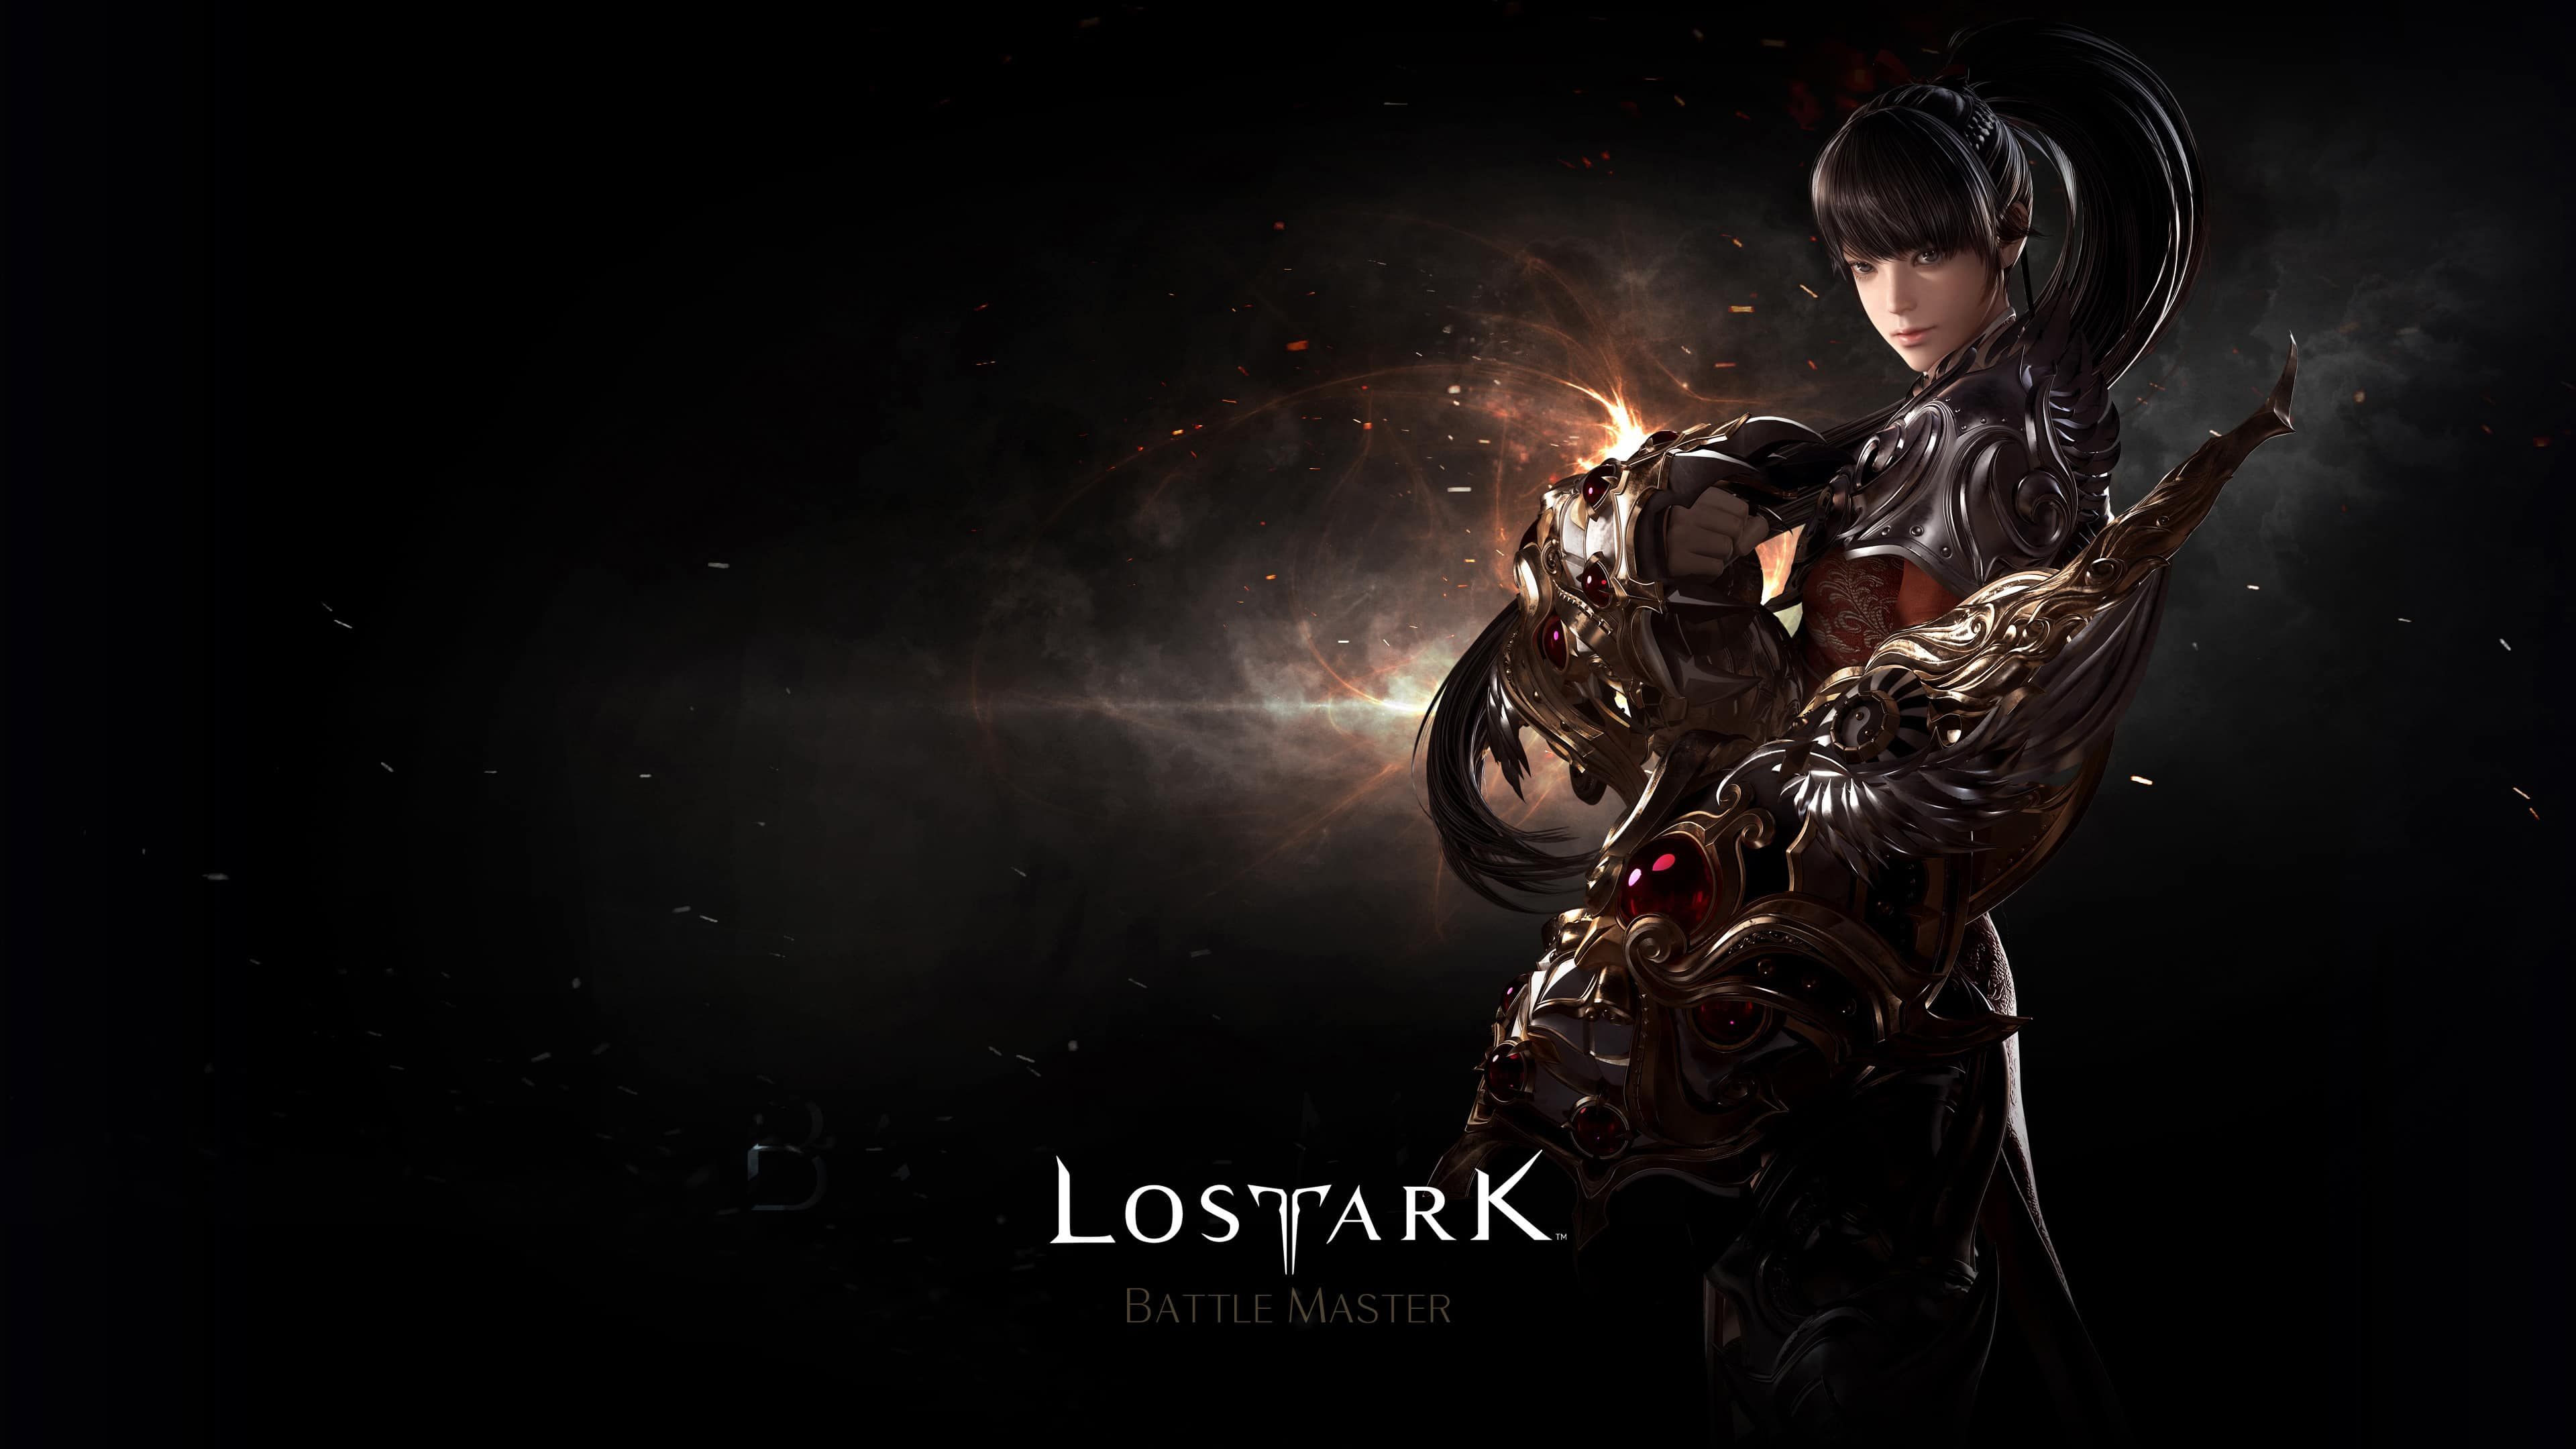 Lost Ark Battle Master Uhd 4k Wallpaper Pixelz